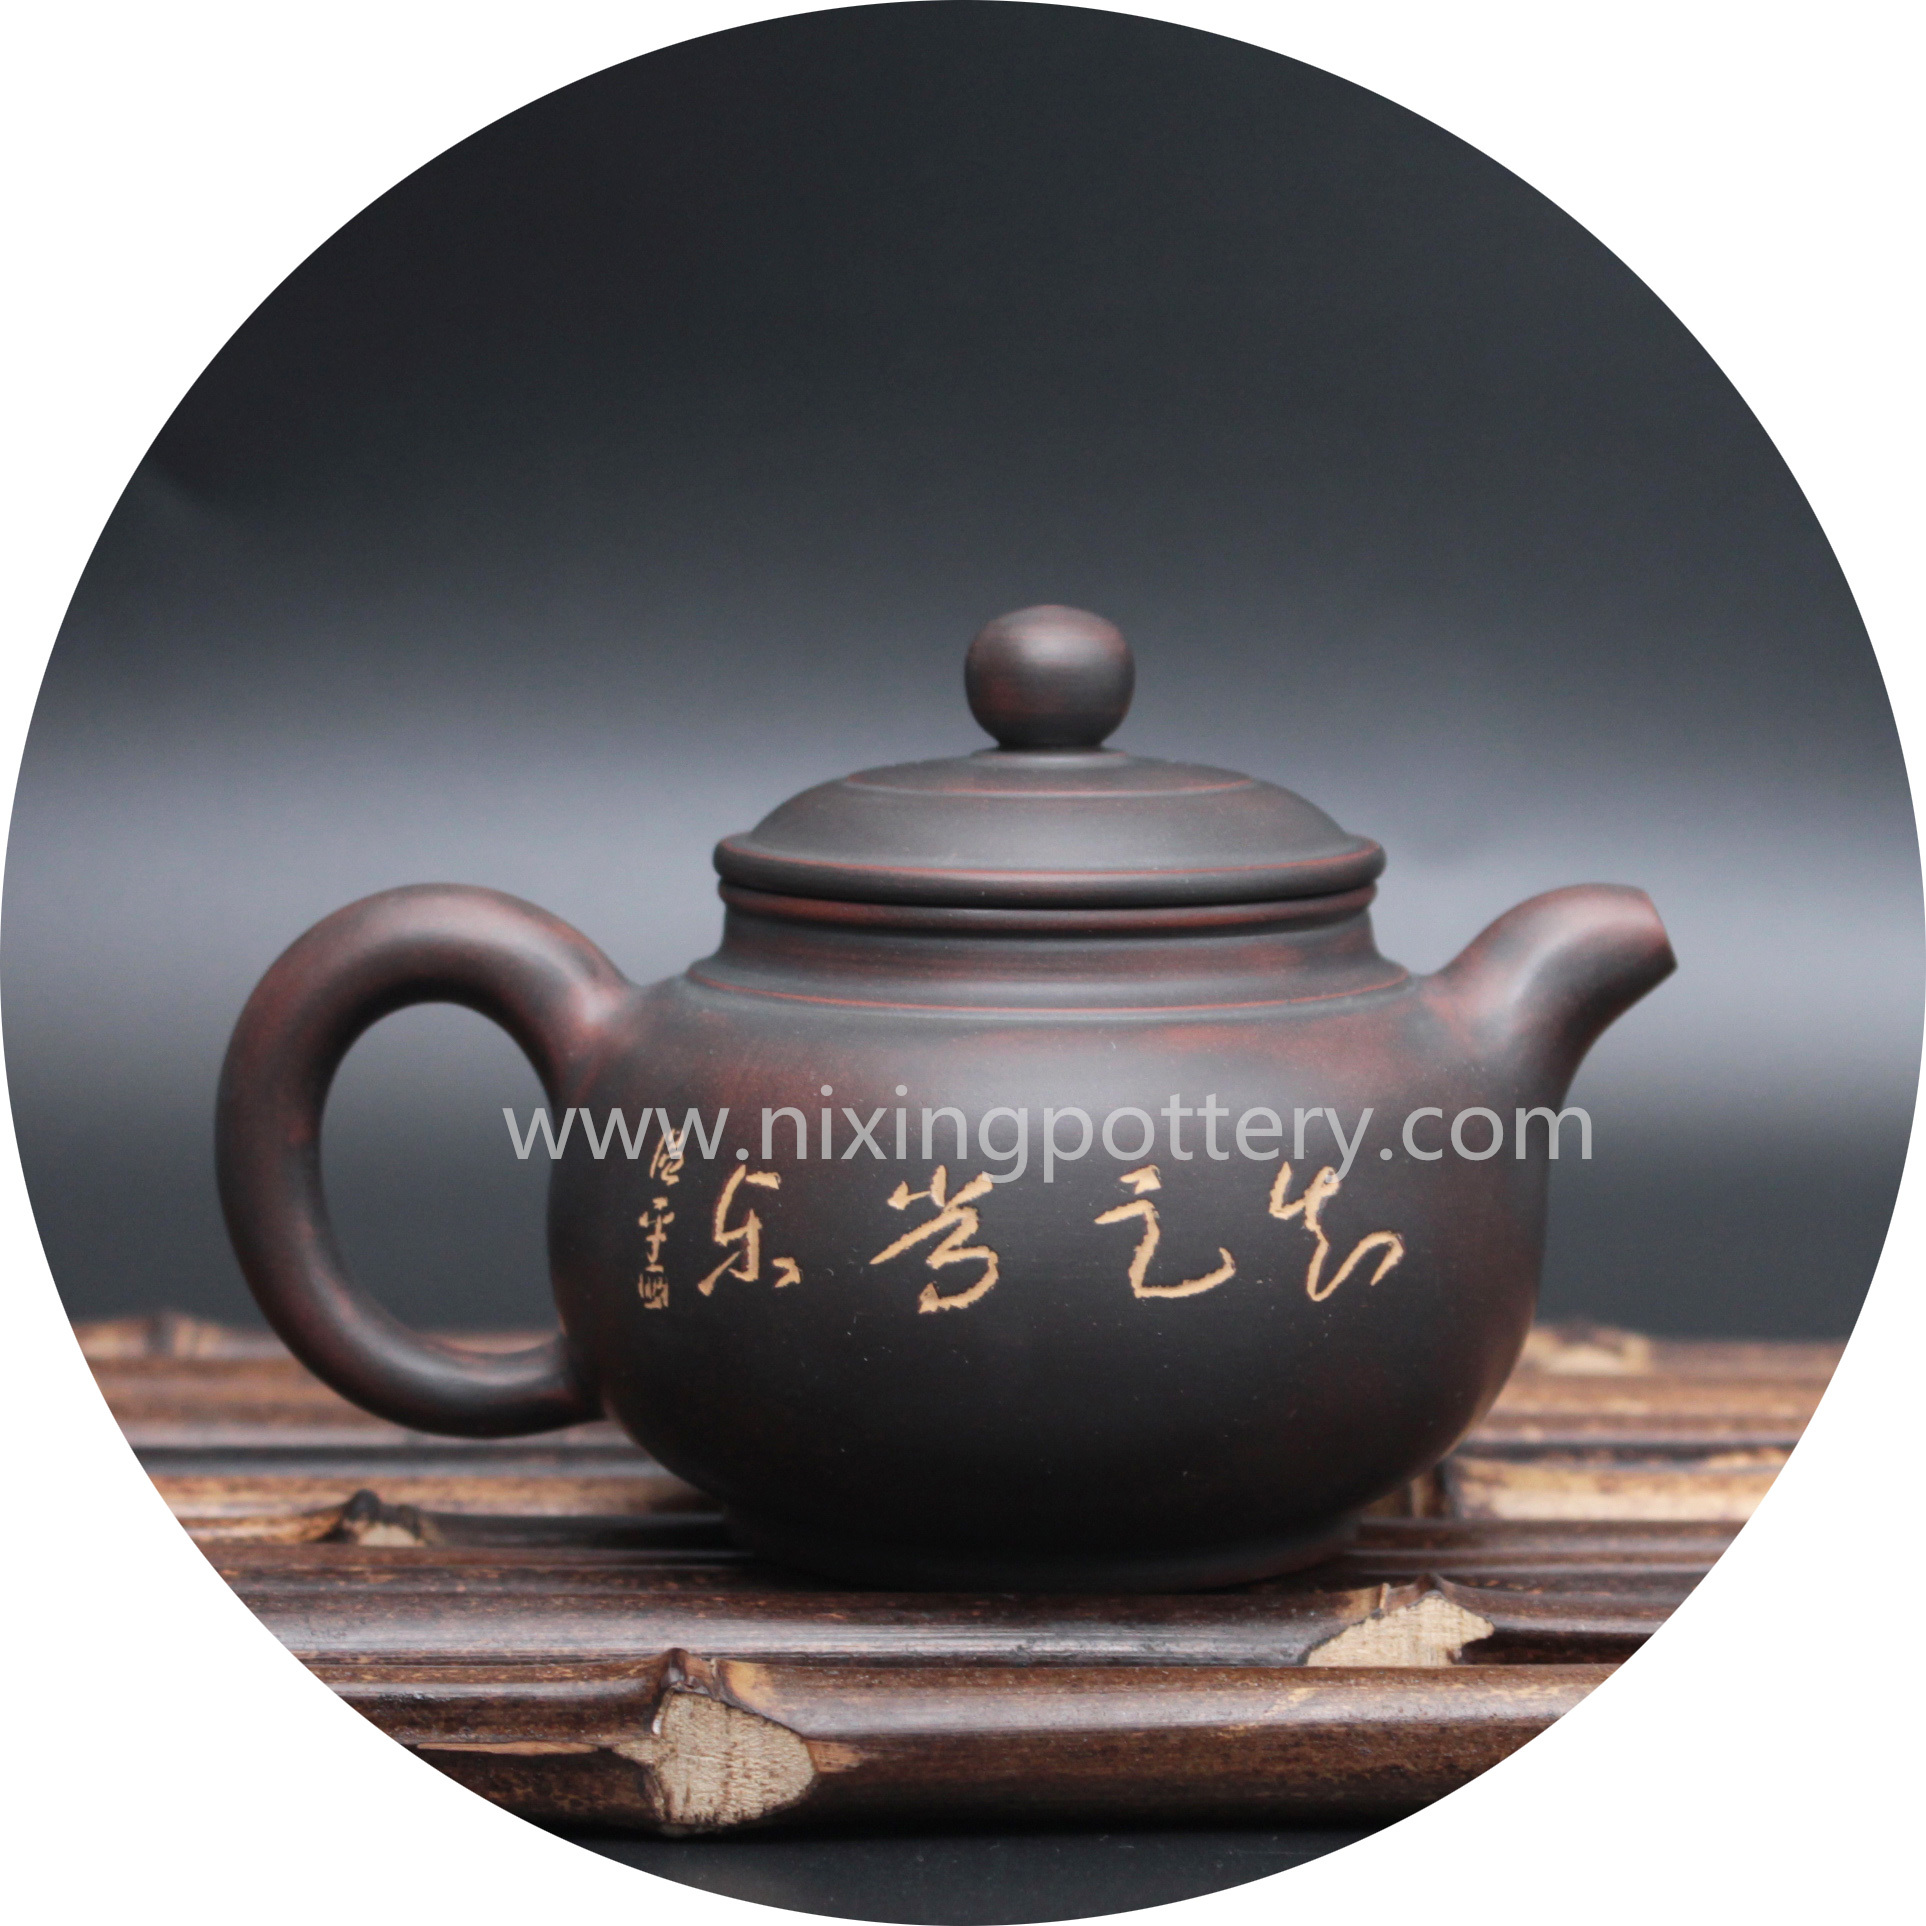 180ml Vintage Teapot Nixing Pottery Antique Tea Pots Pure Handmade Tea Set